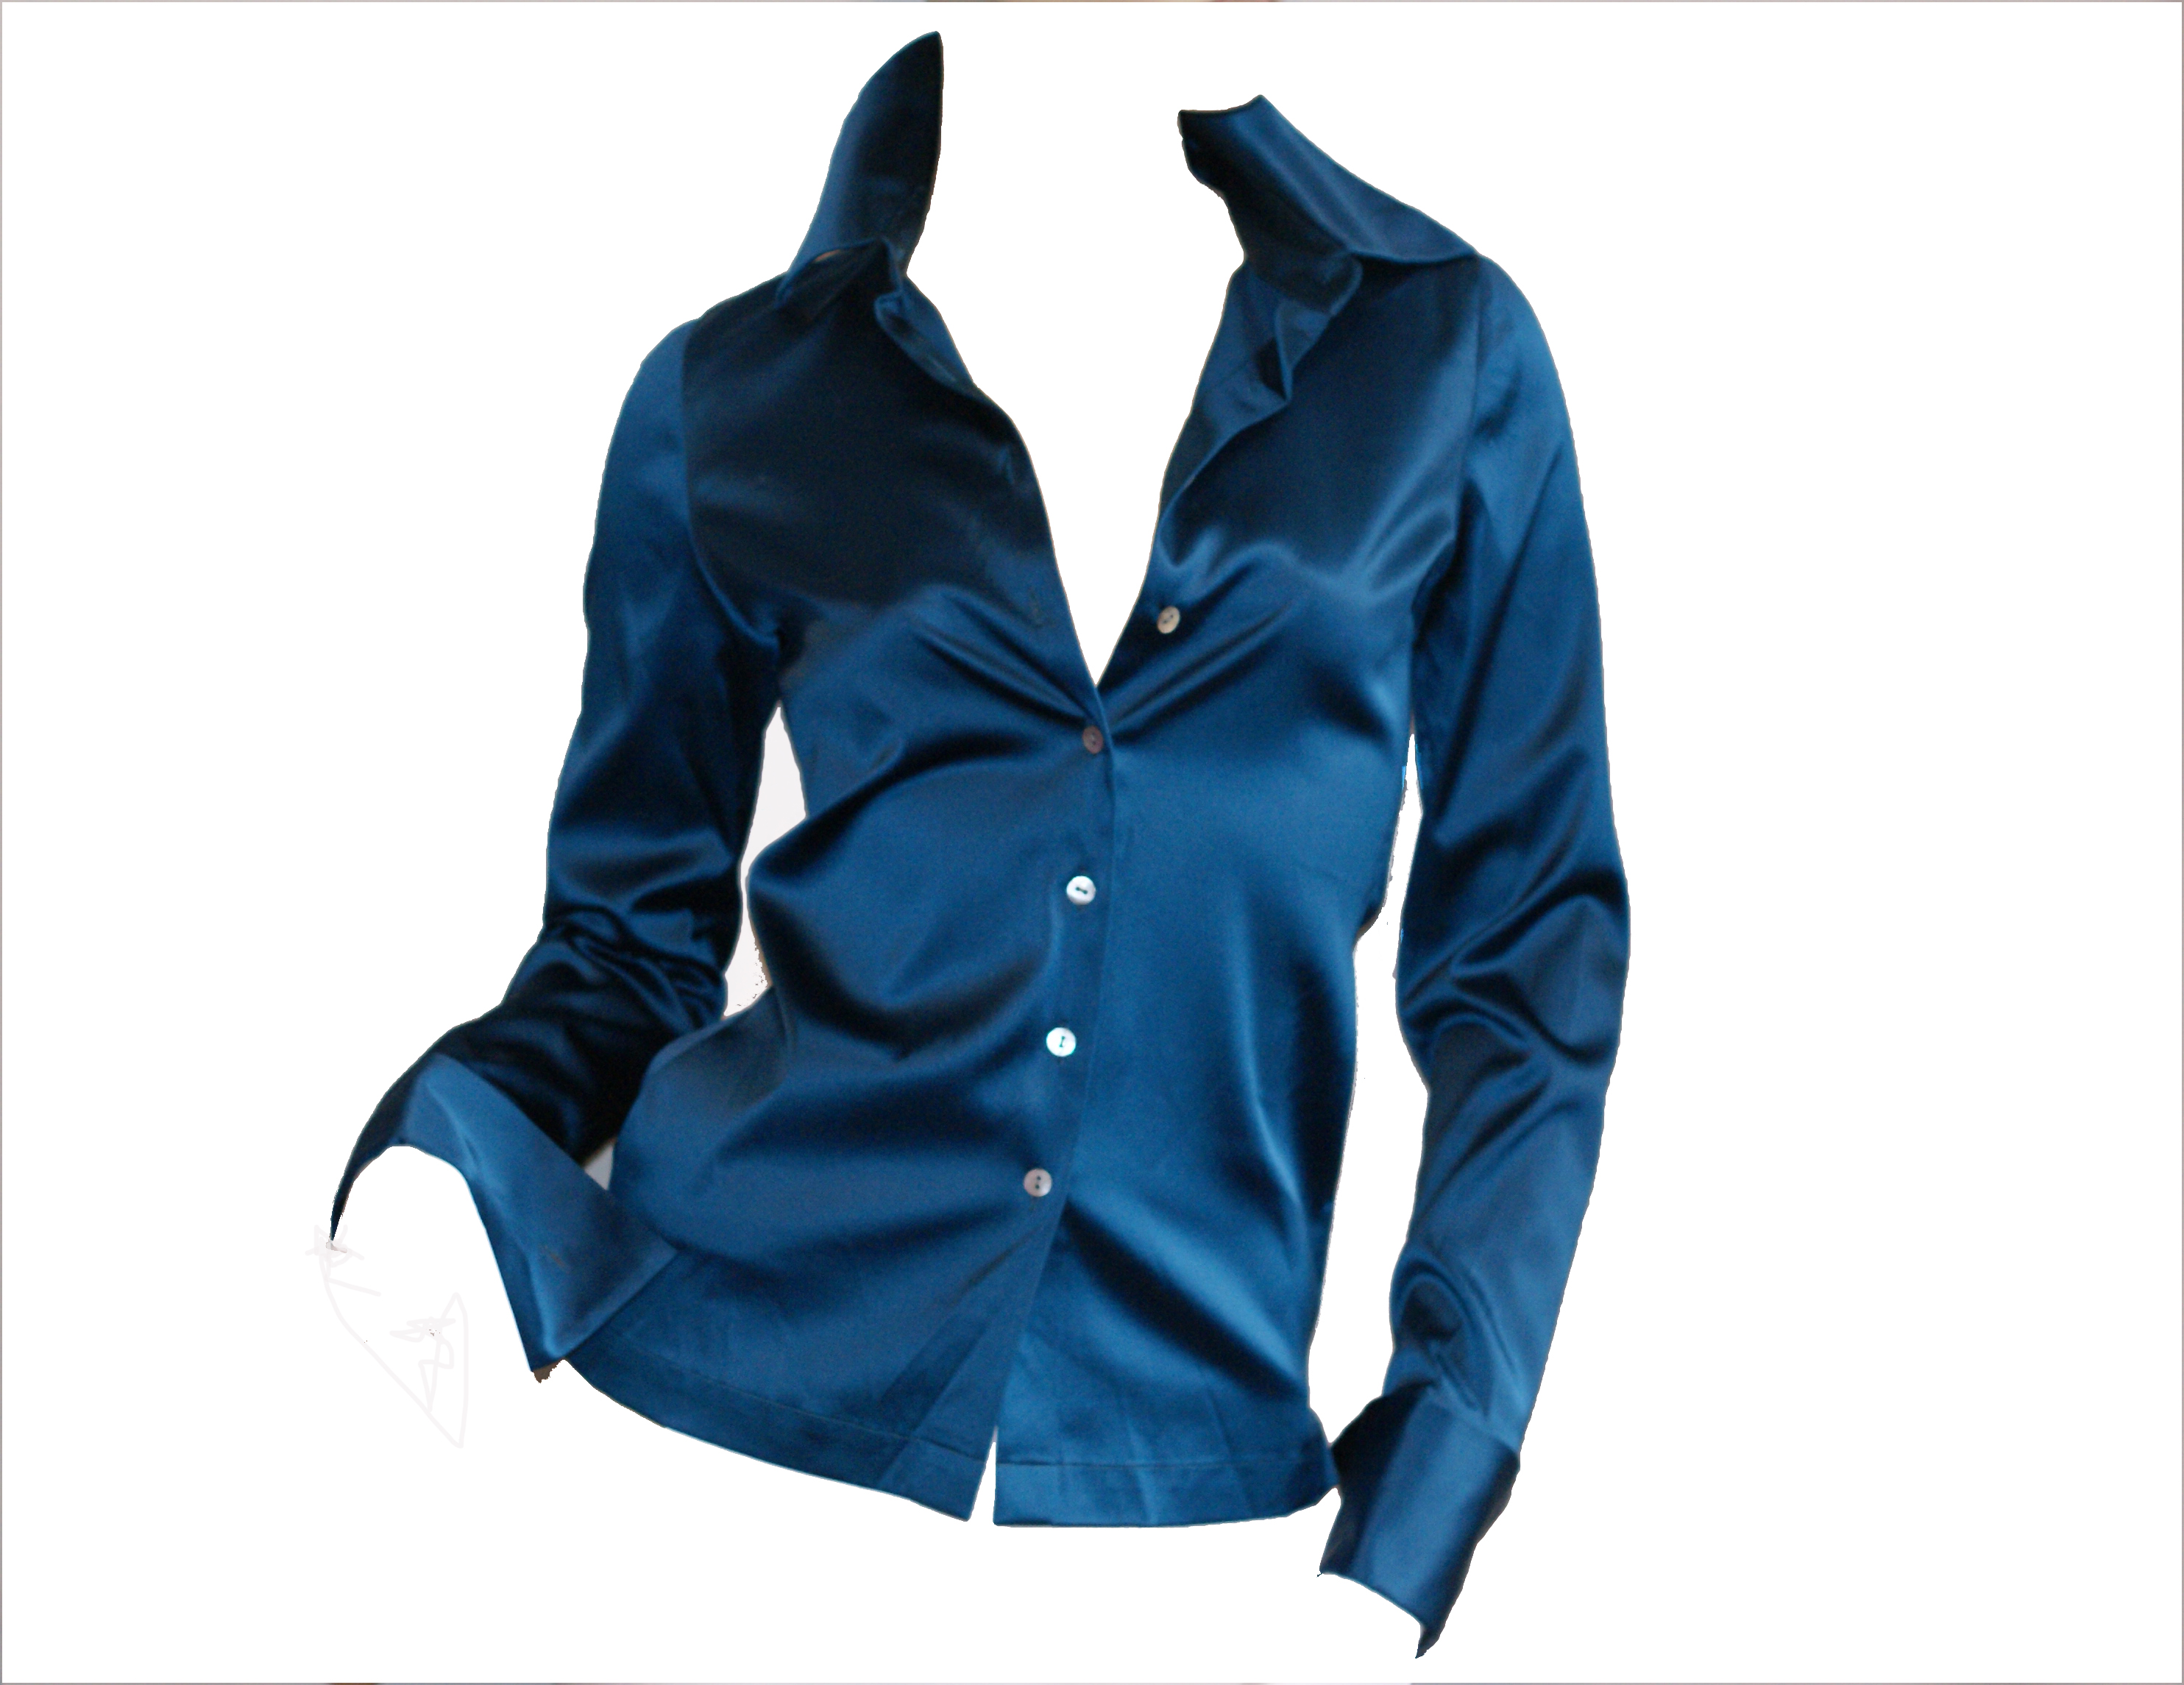 blouse-french-cuff-blue-frontdsc01815-copy.jpg